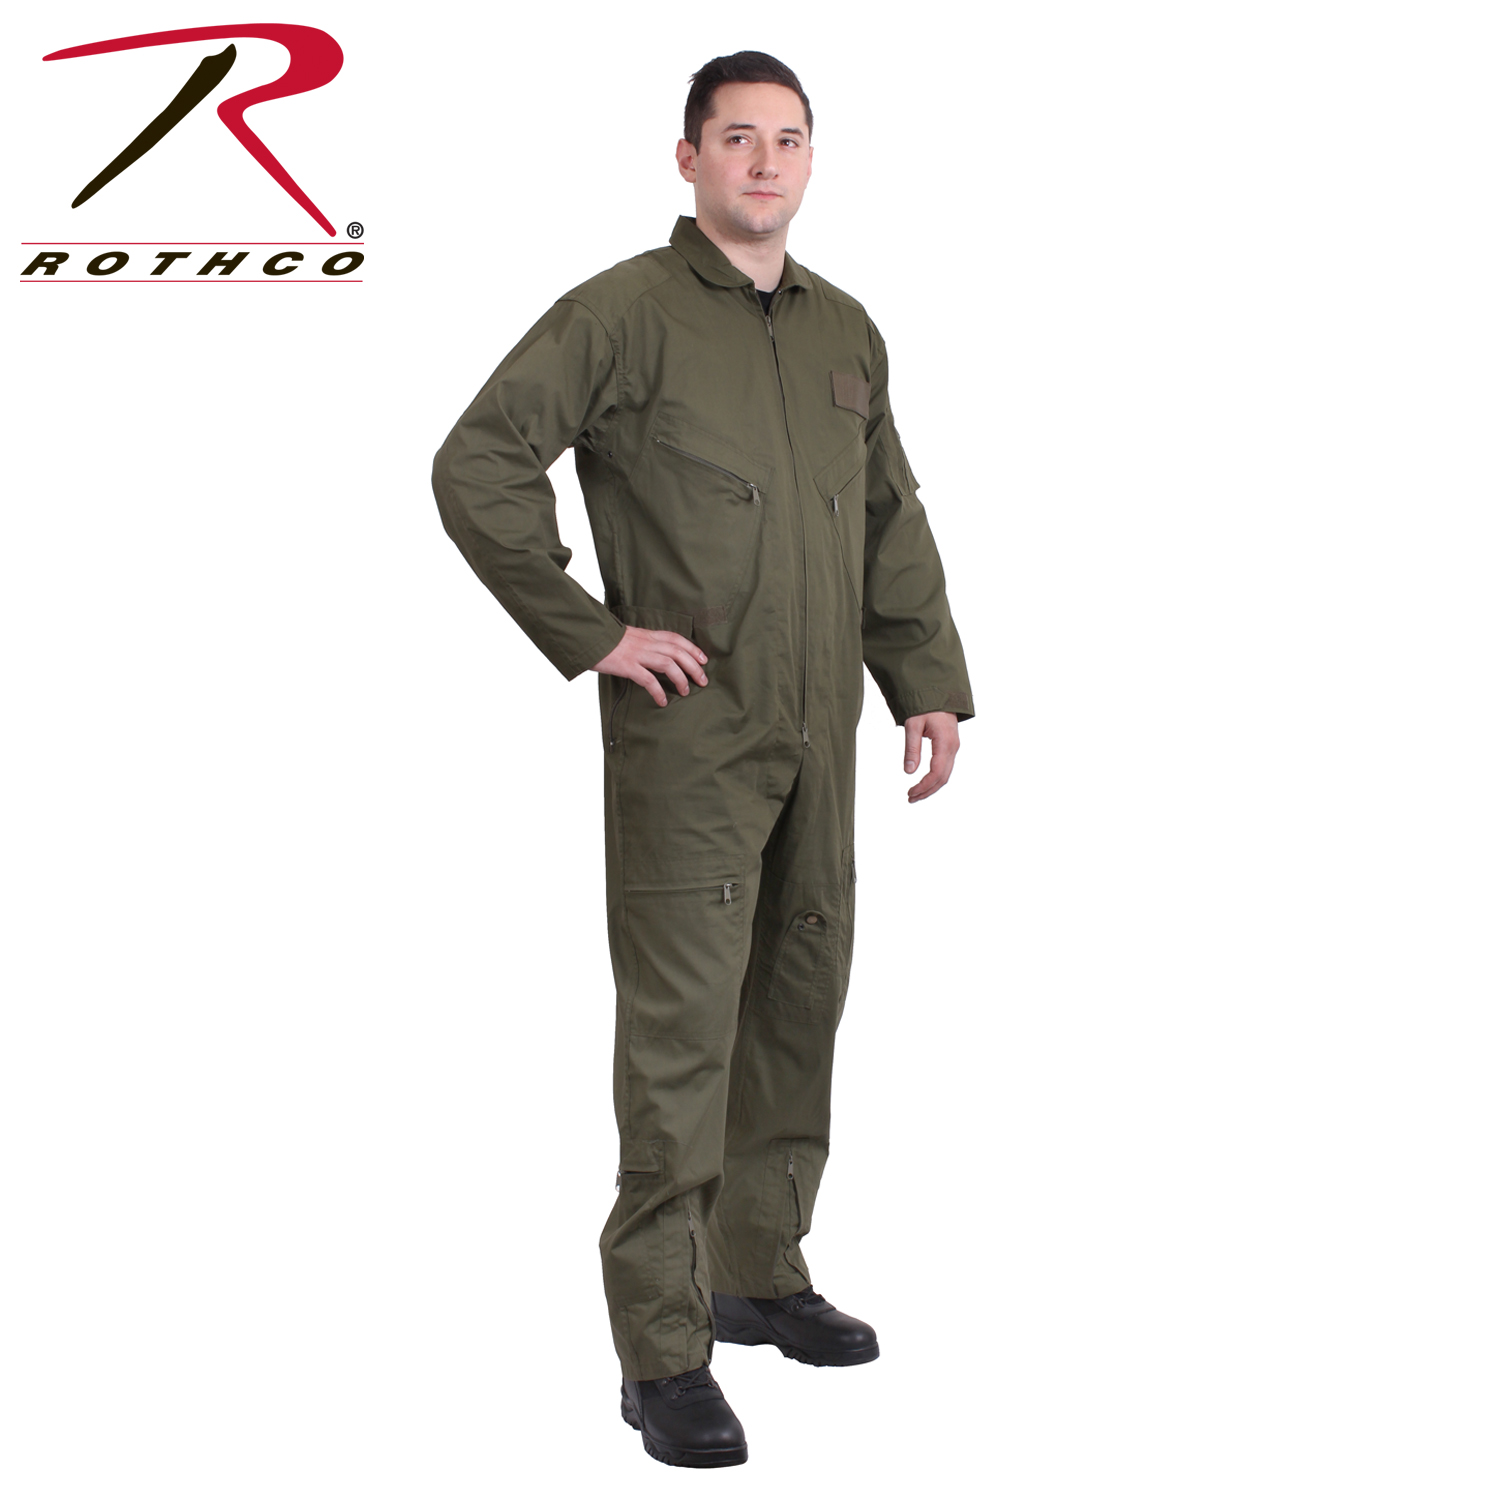 32a513d6c85 US Air Force Style Military Camouflage Flight Suit Coveralls (Olive Drab